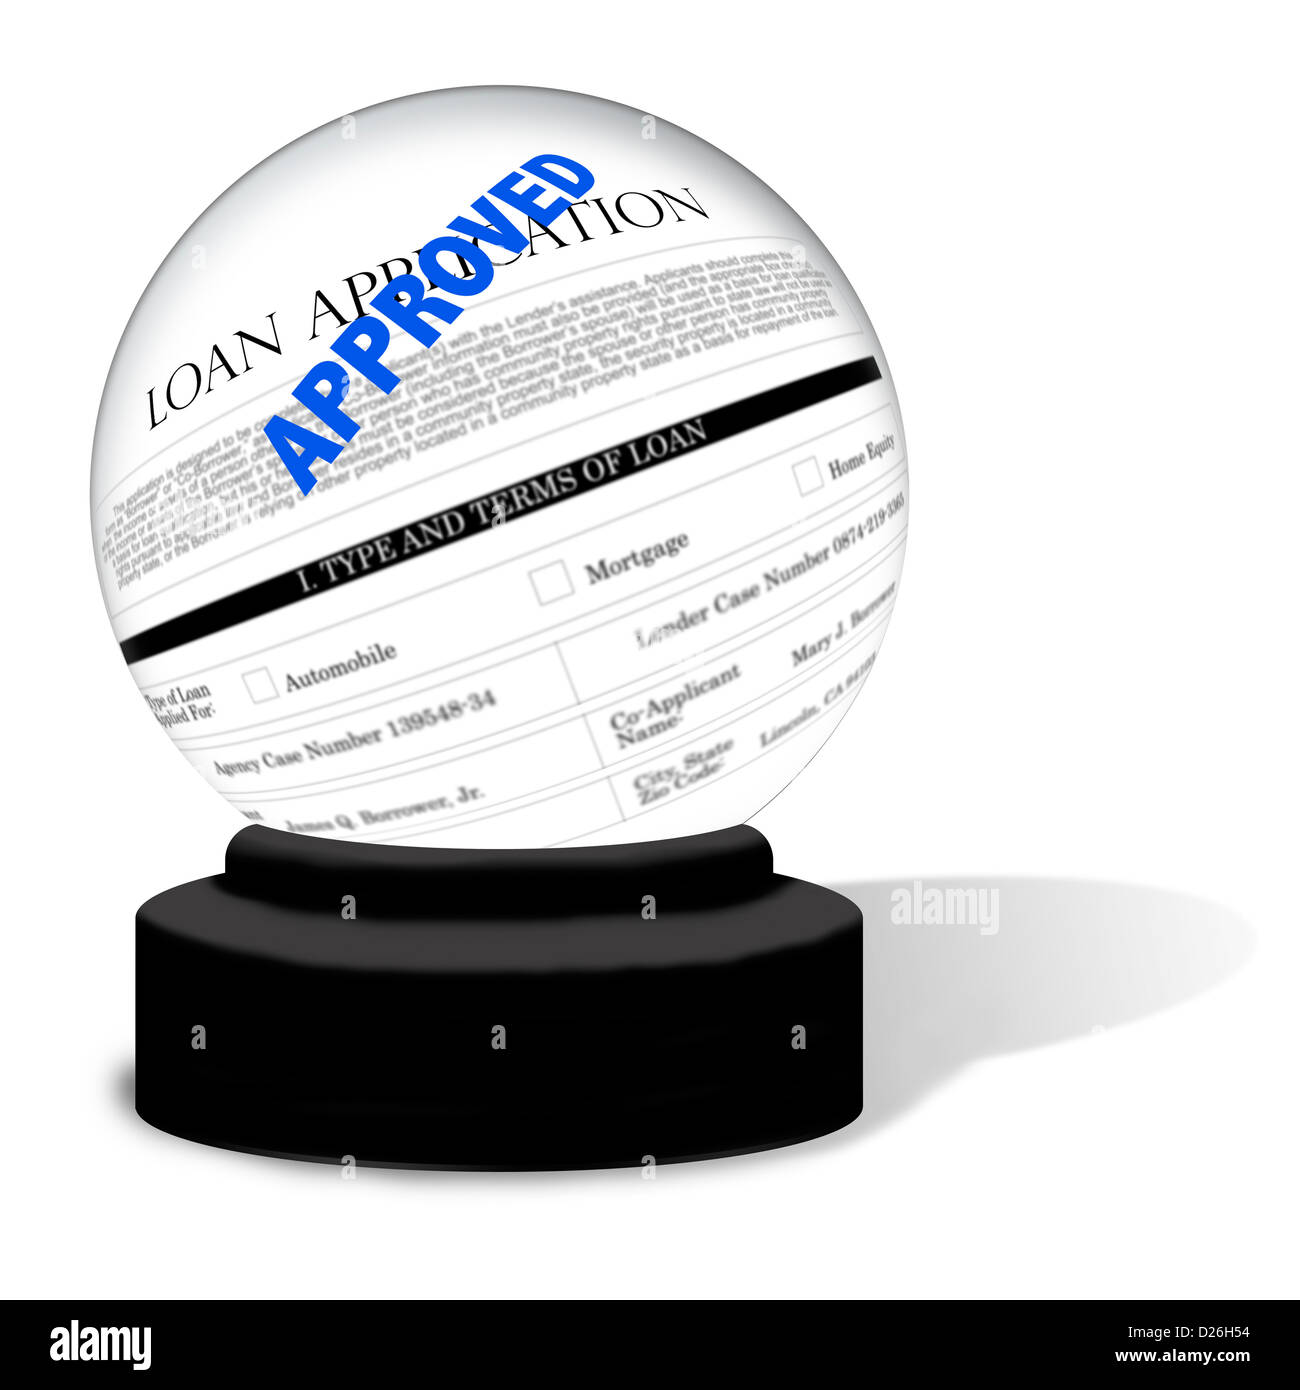 Loan Approval Crystal Ball - Stock Image